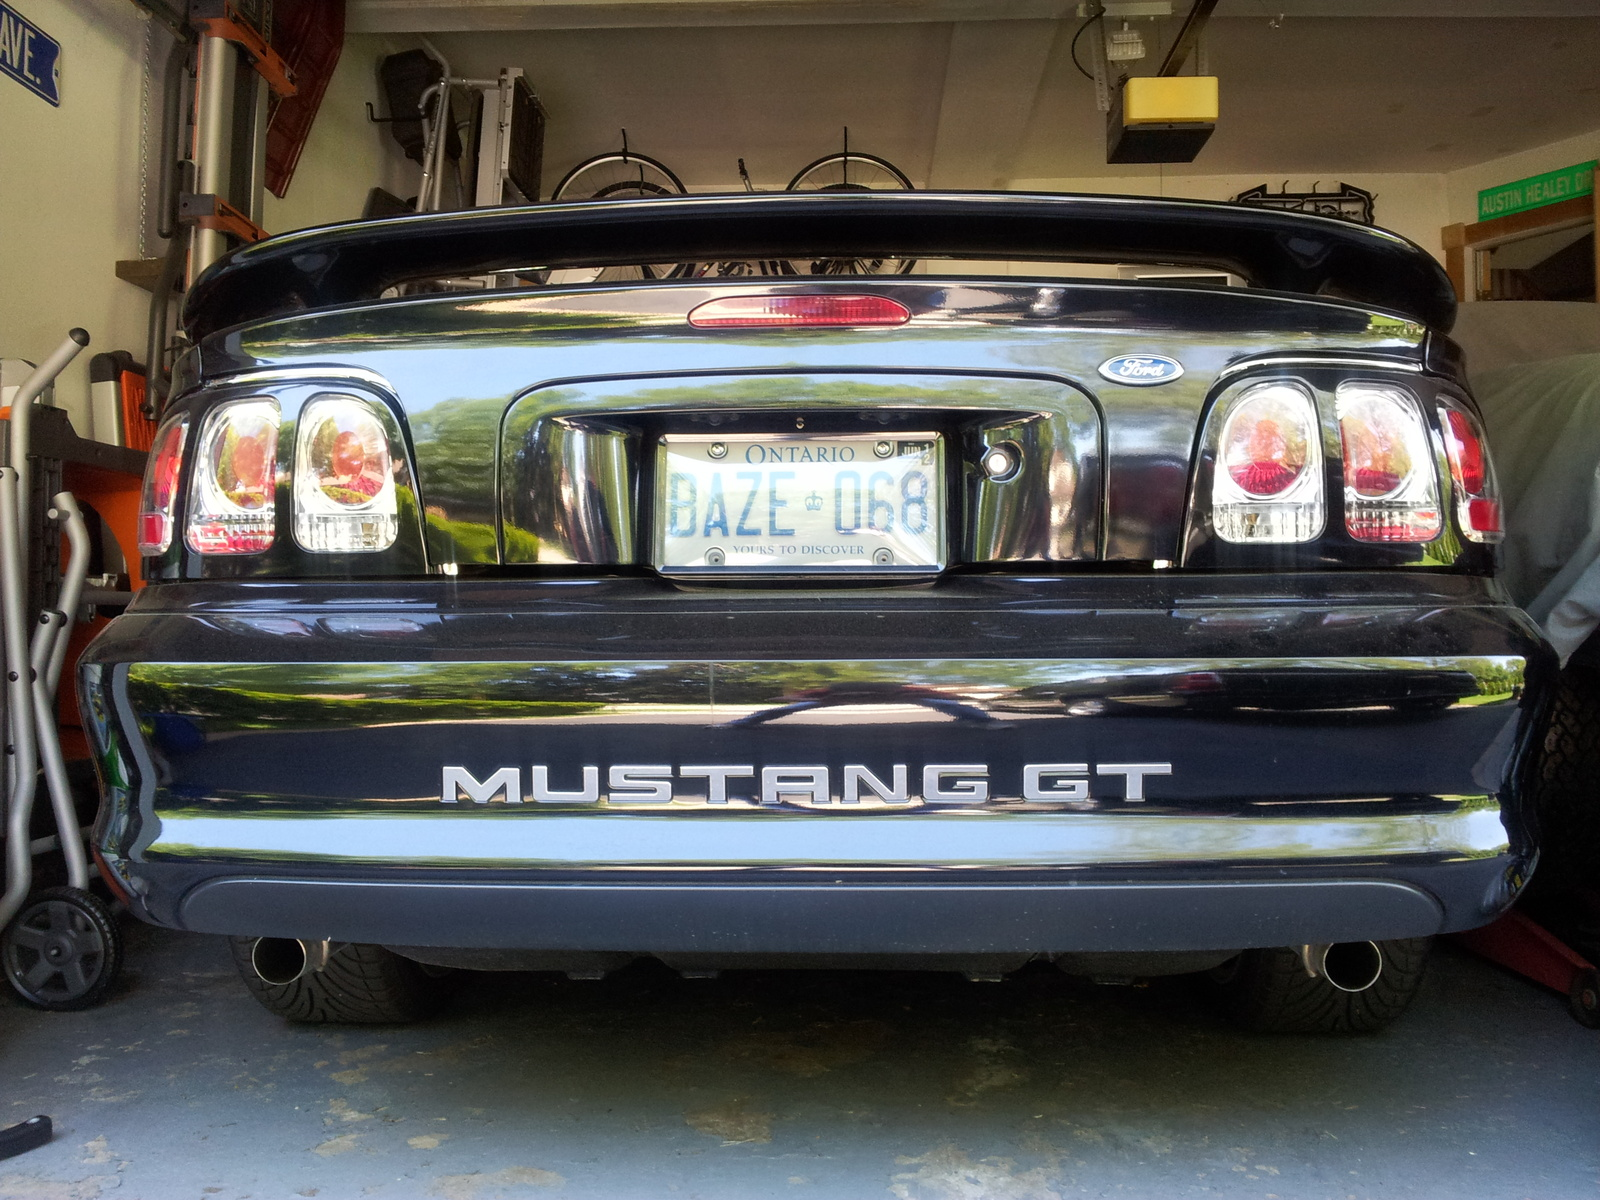 hight resolution of i have a 1996 mustang gt 4 6 sohc i need an egine what engine can i use without changing the computer or wiring harness